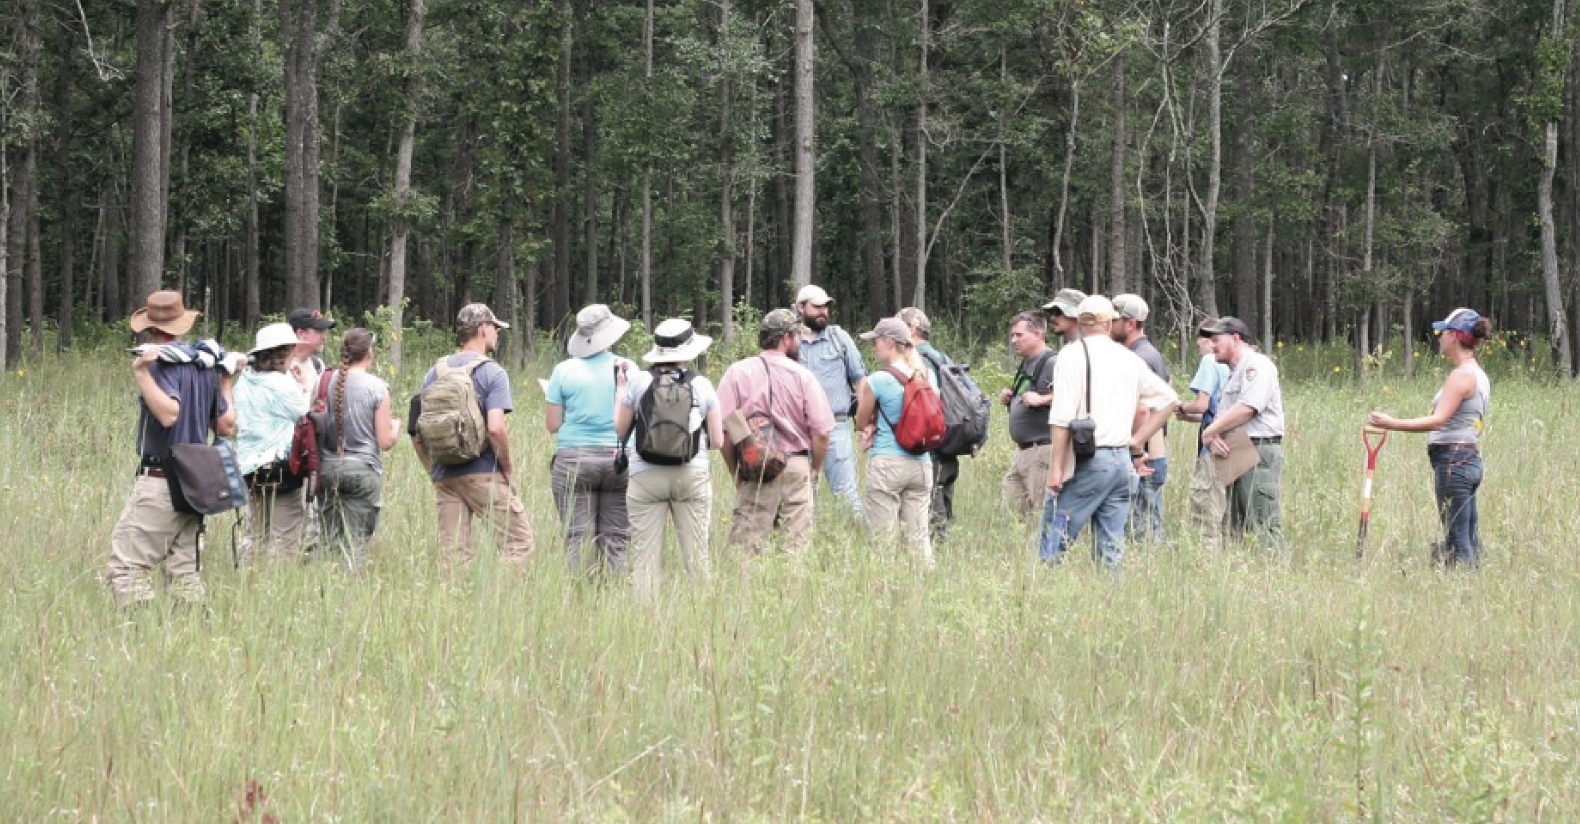 SGI Director, Dr. Dwayne Estes discussing the significance of native grasslands with various land managers.